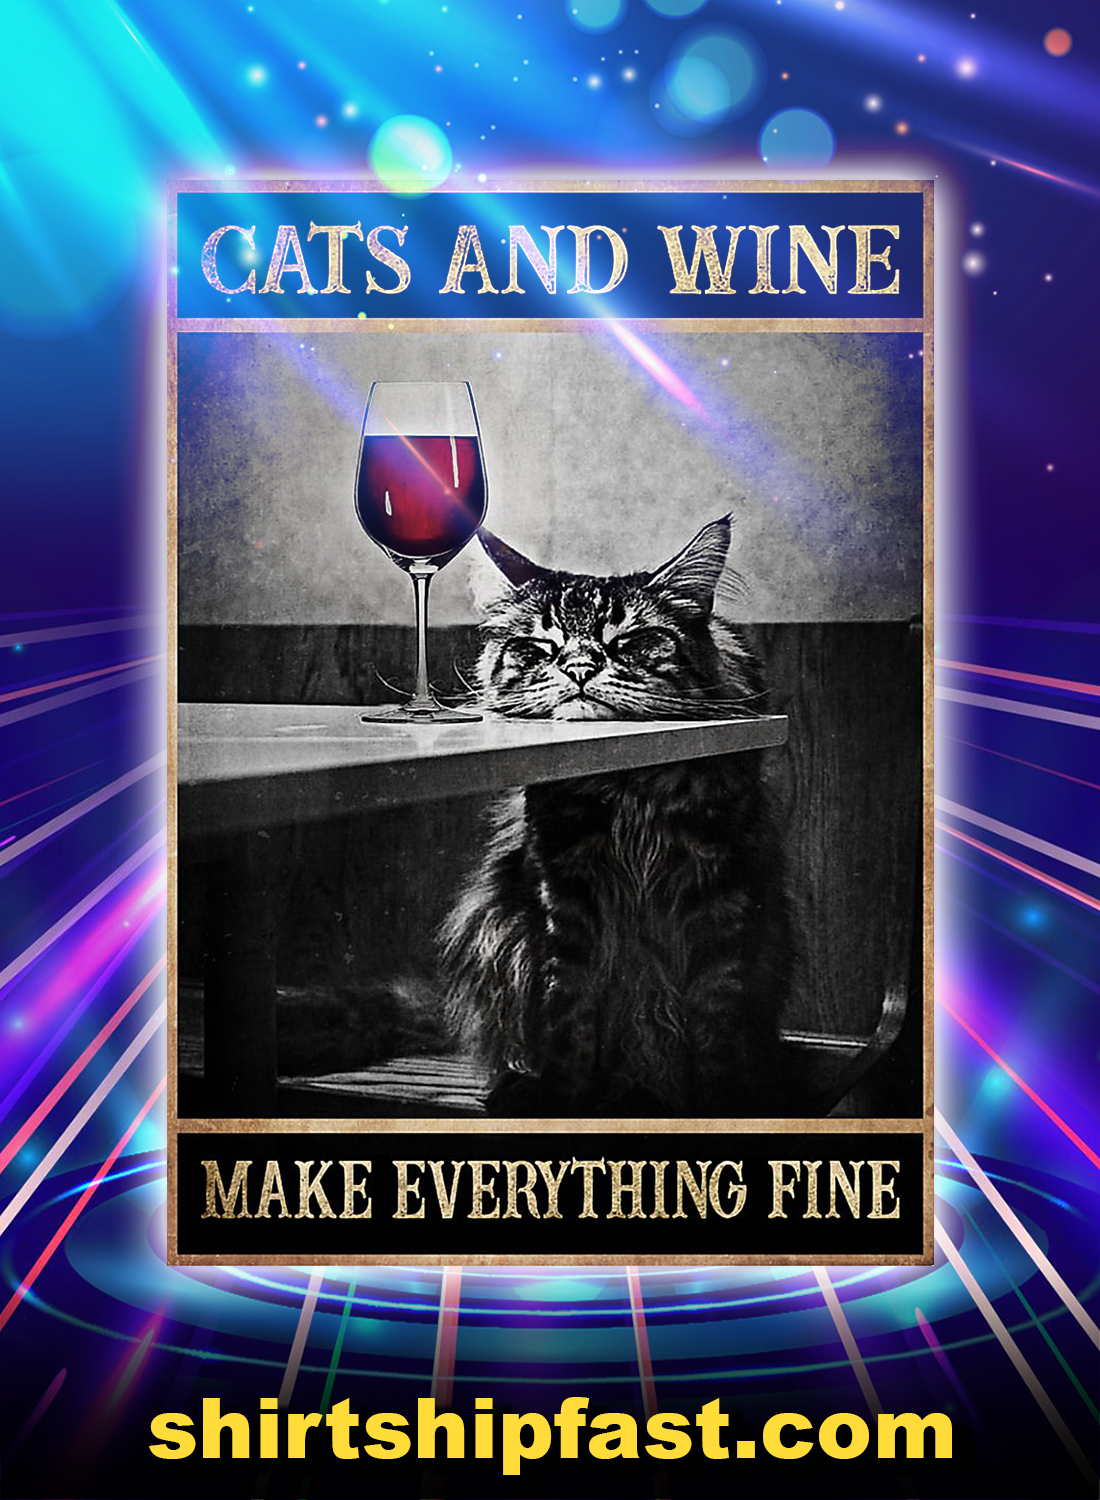 Cats and wine make everything fine poster - Picture 3